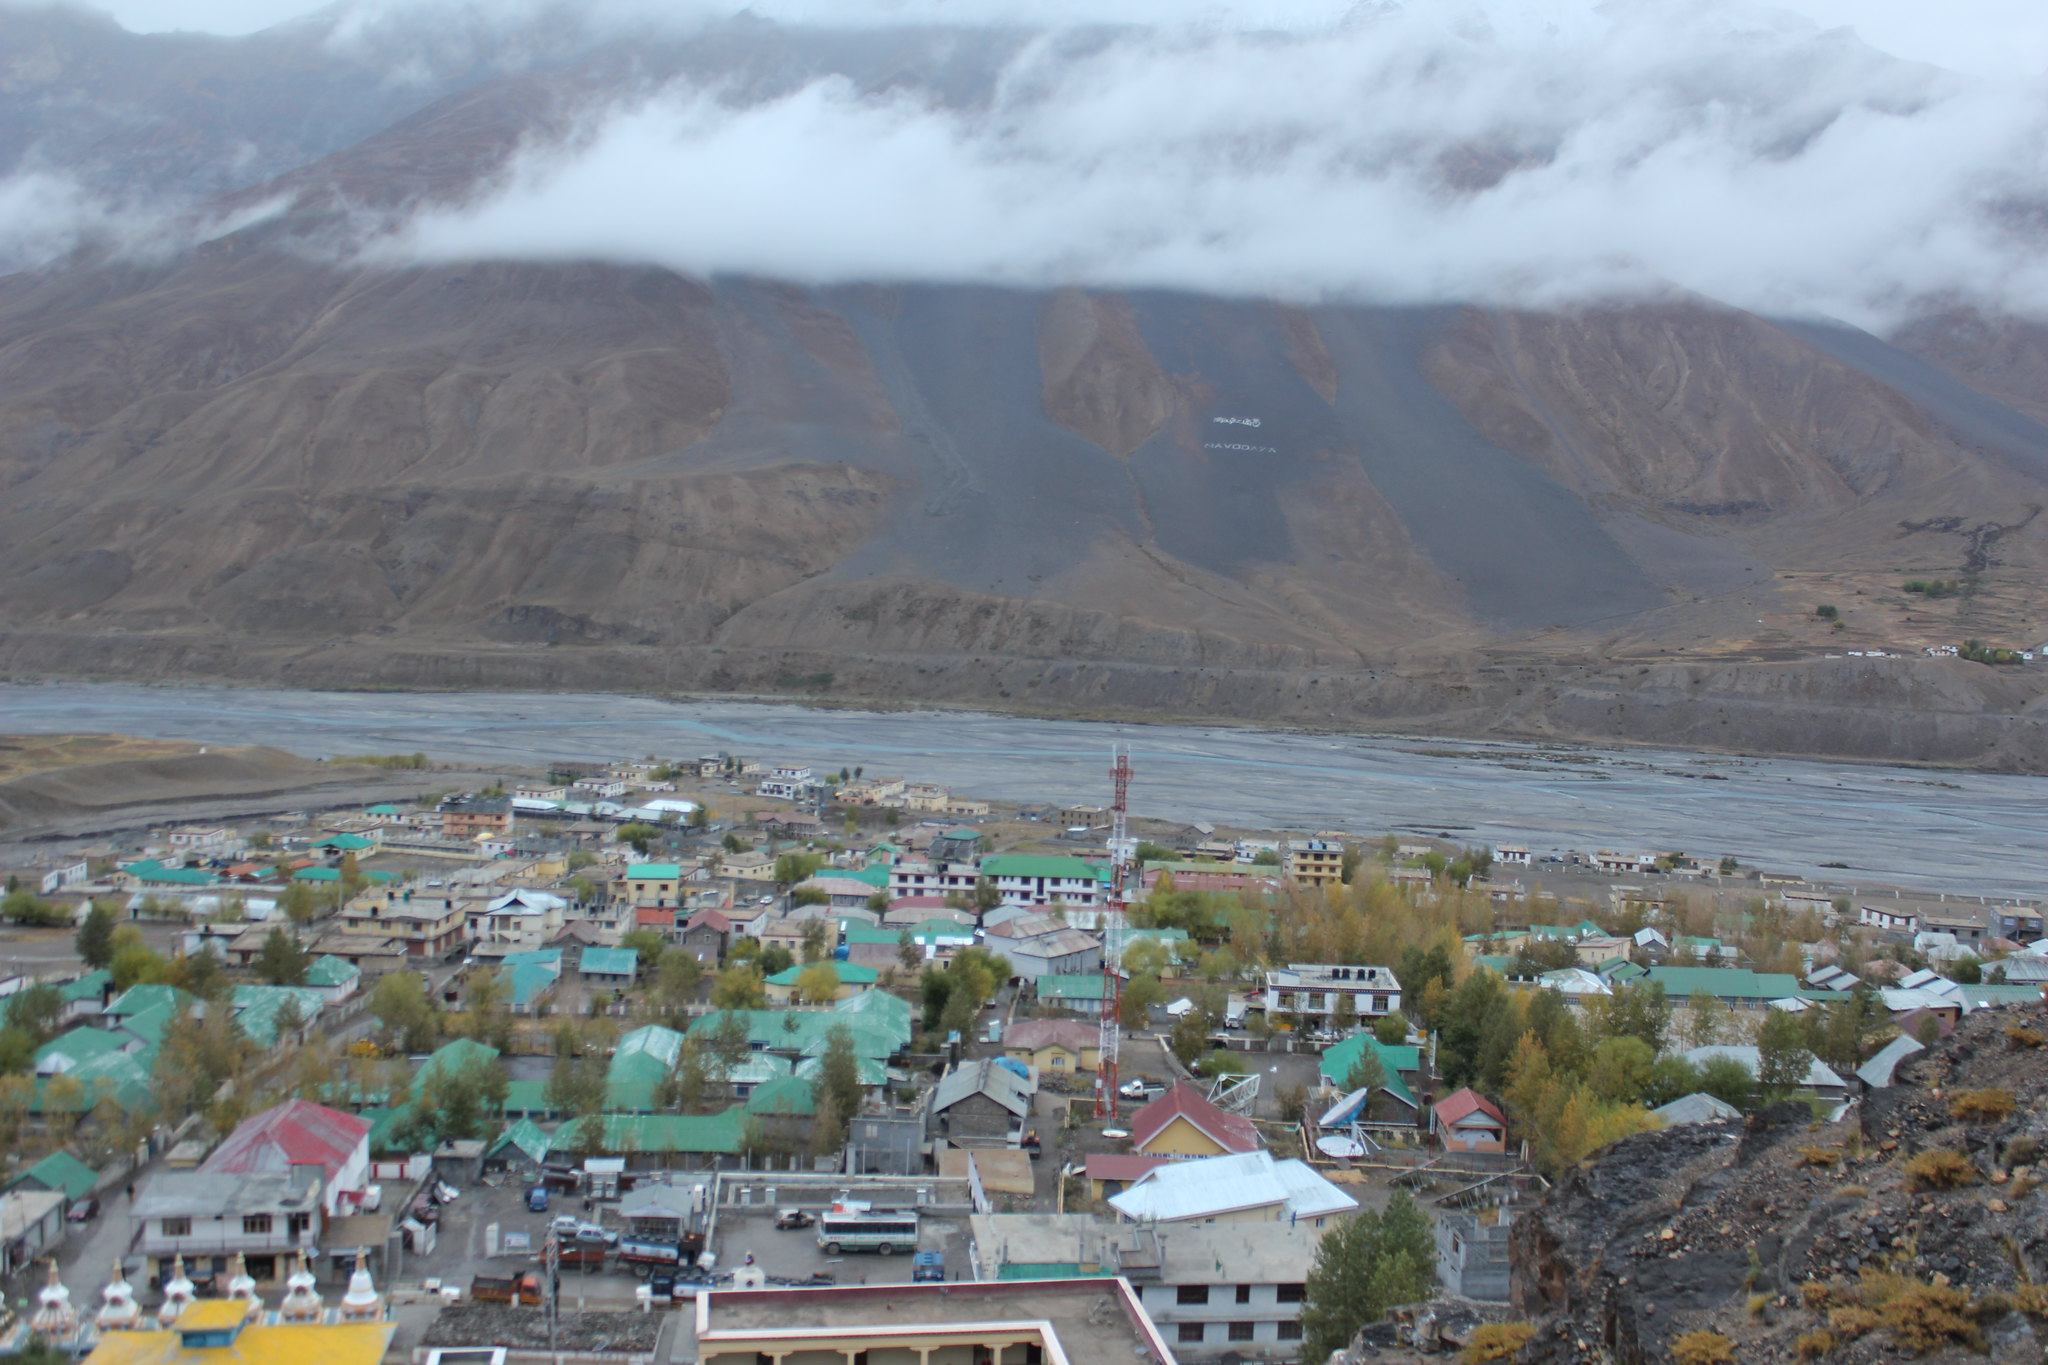 View of Kaza town